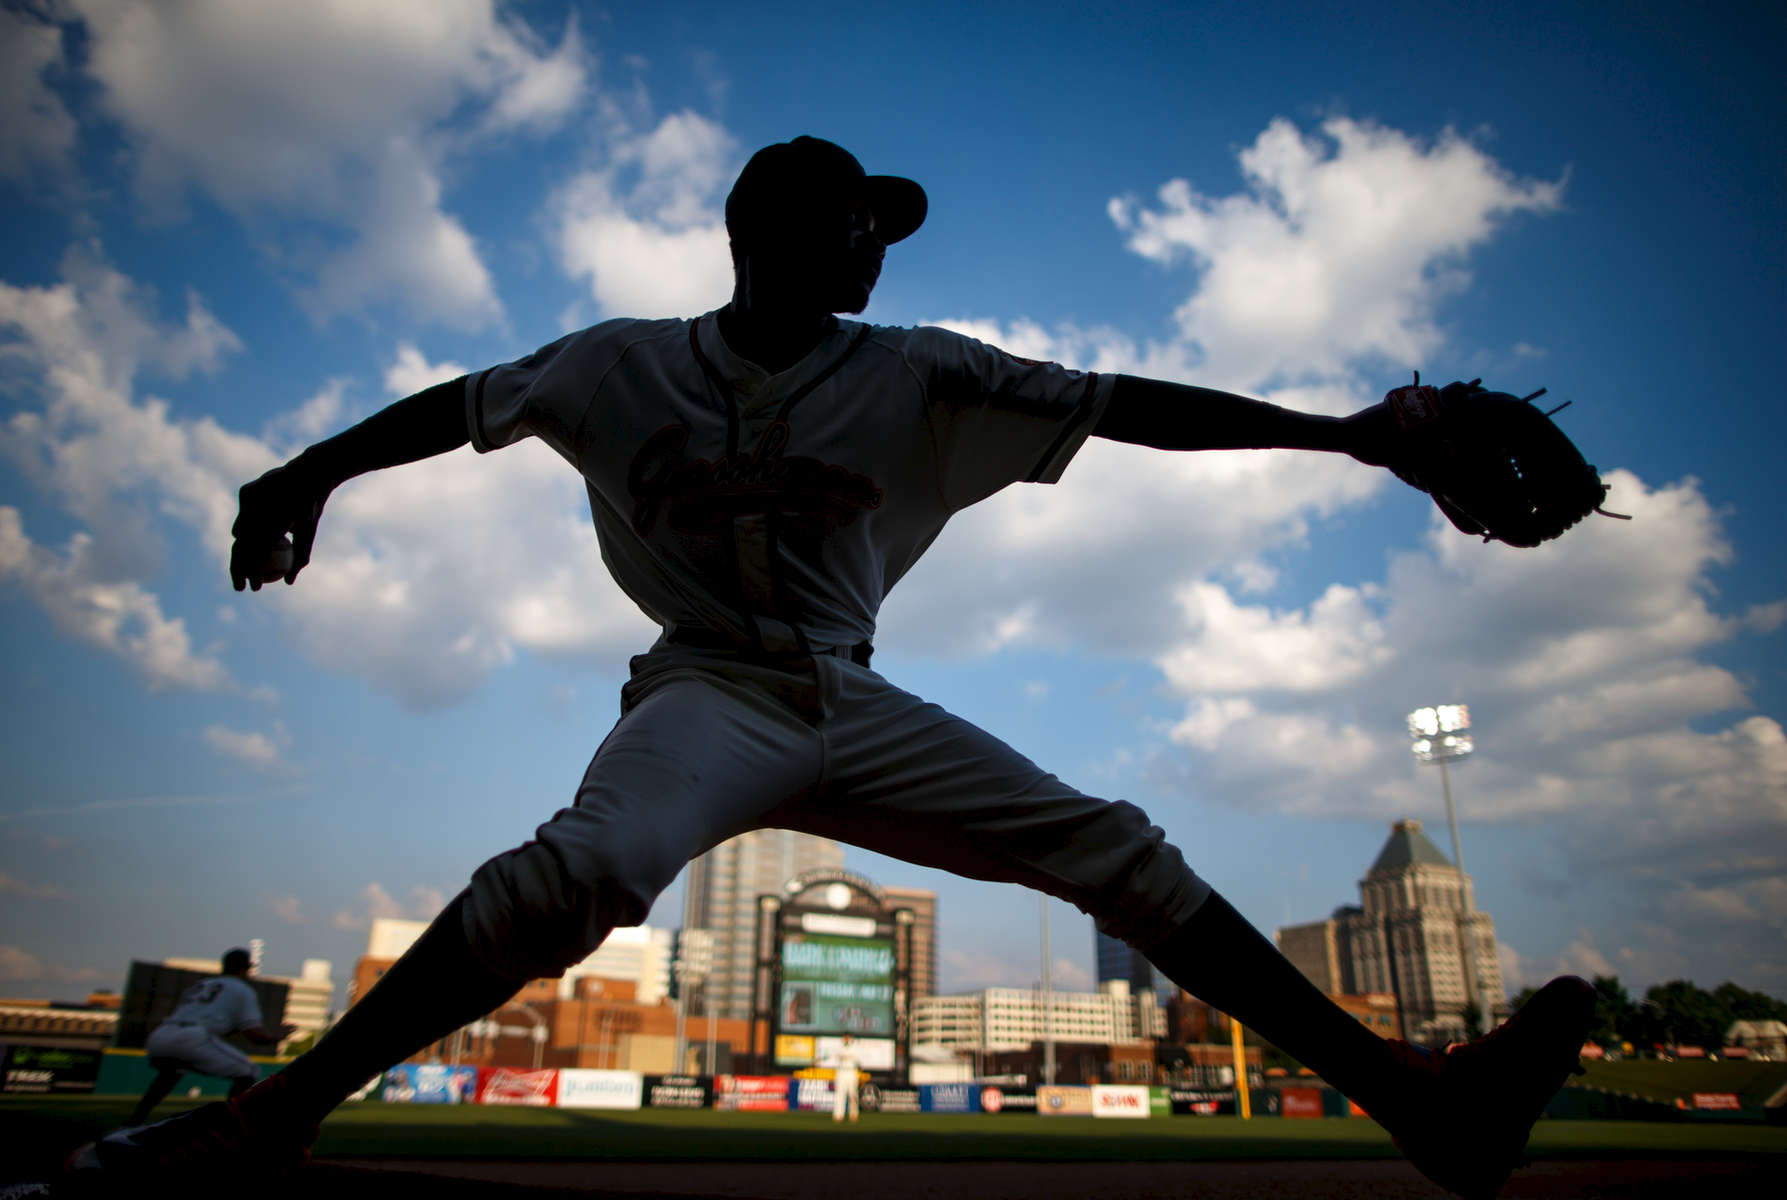 Sports Photographer of the Year Jerry Wolford, News & Record (Greensboro)Hoppers\' pitcher Domingo German warms up in the bullpen before starting the game on Wednesday, May 14, 2014, in at NewBridge Bank Park.